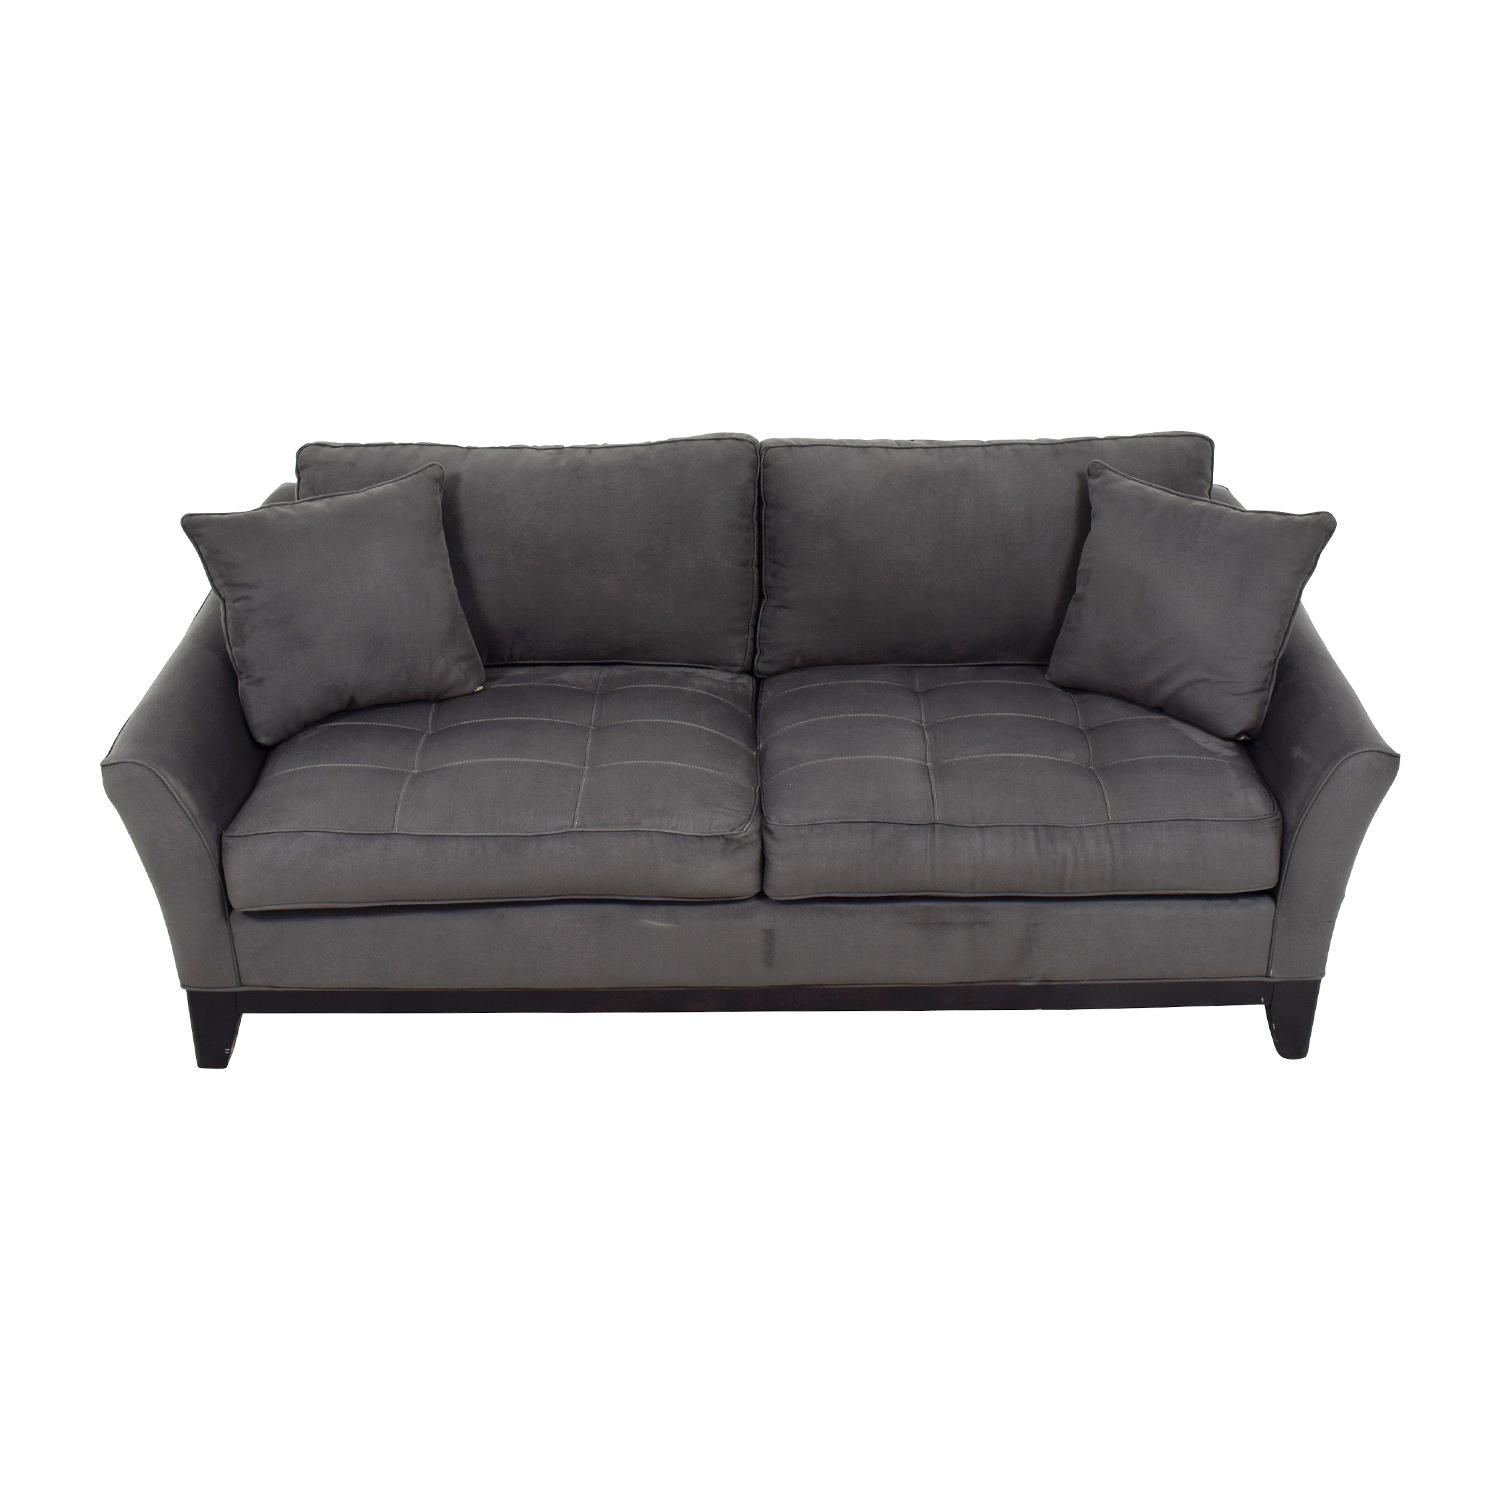 buy Raymour and Flanigan Slate Microfiber Two-Seater Sofa Raymour and Flanigan Sofas